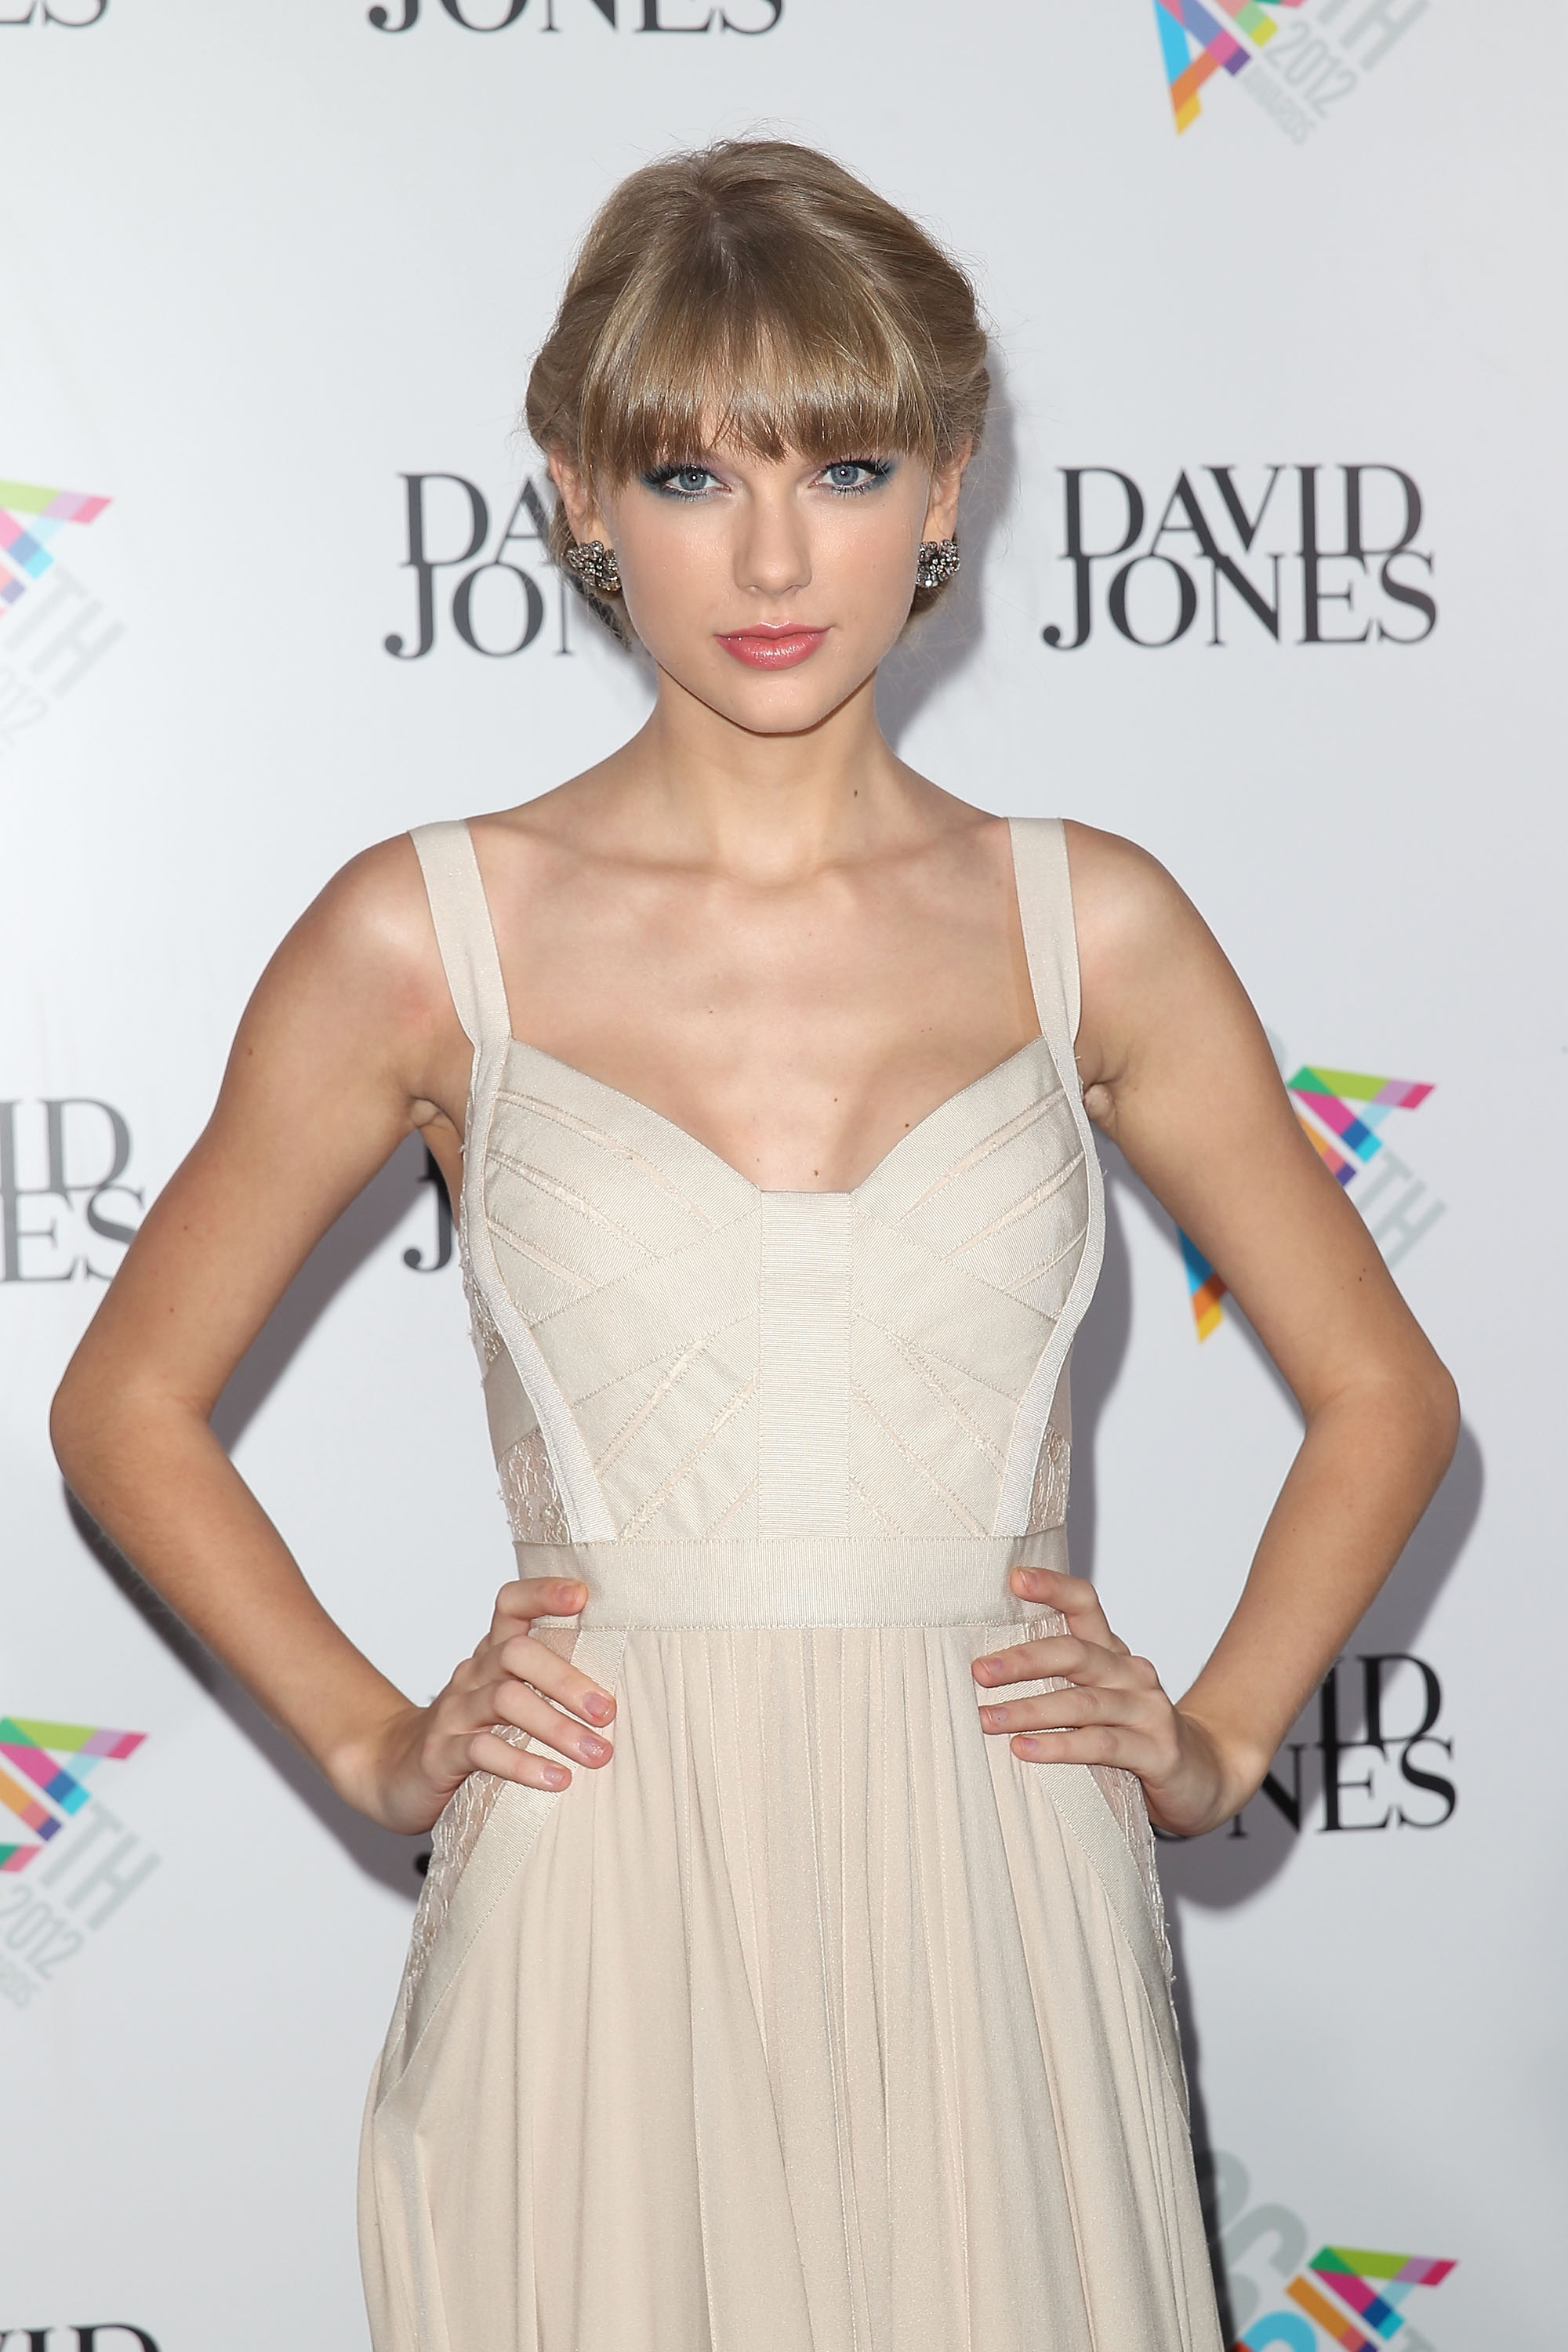 Taylor Swift donned an Elie Saab gown.